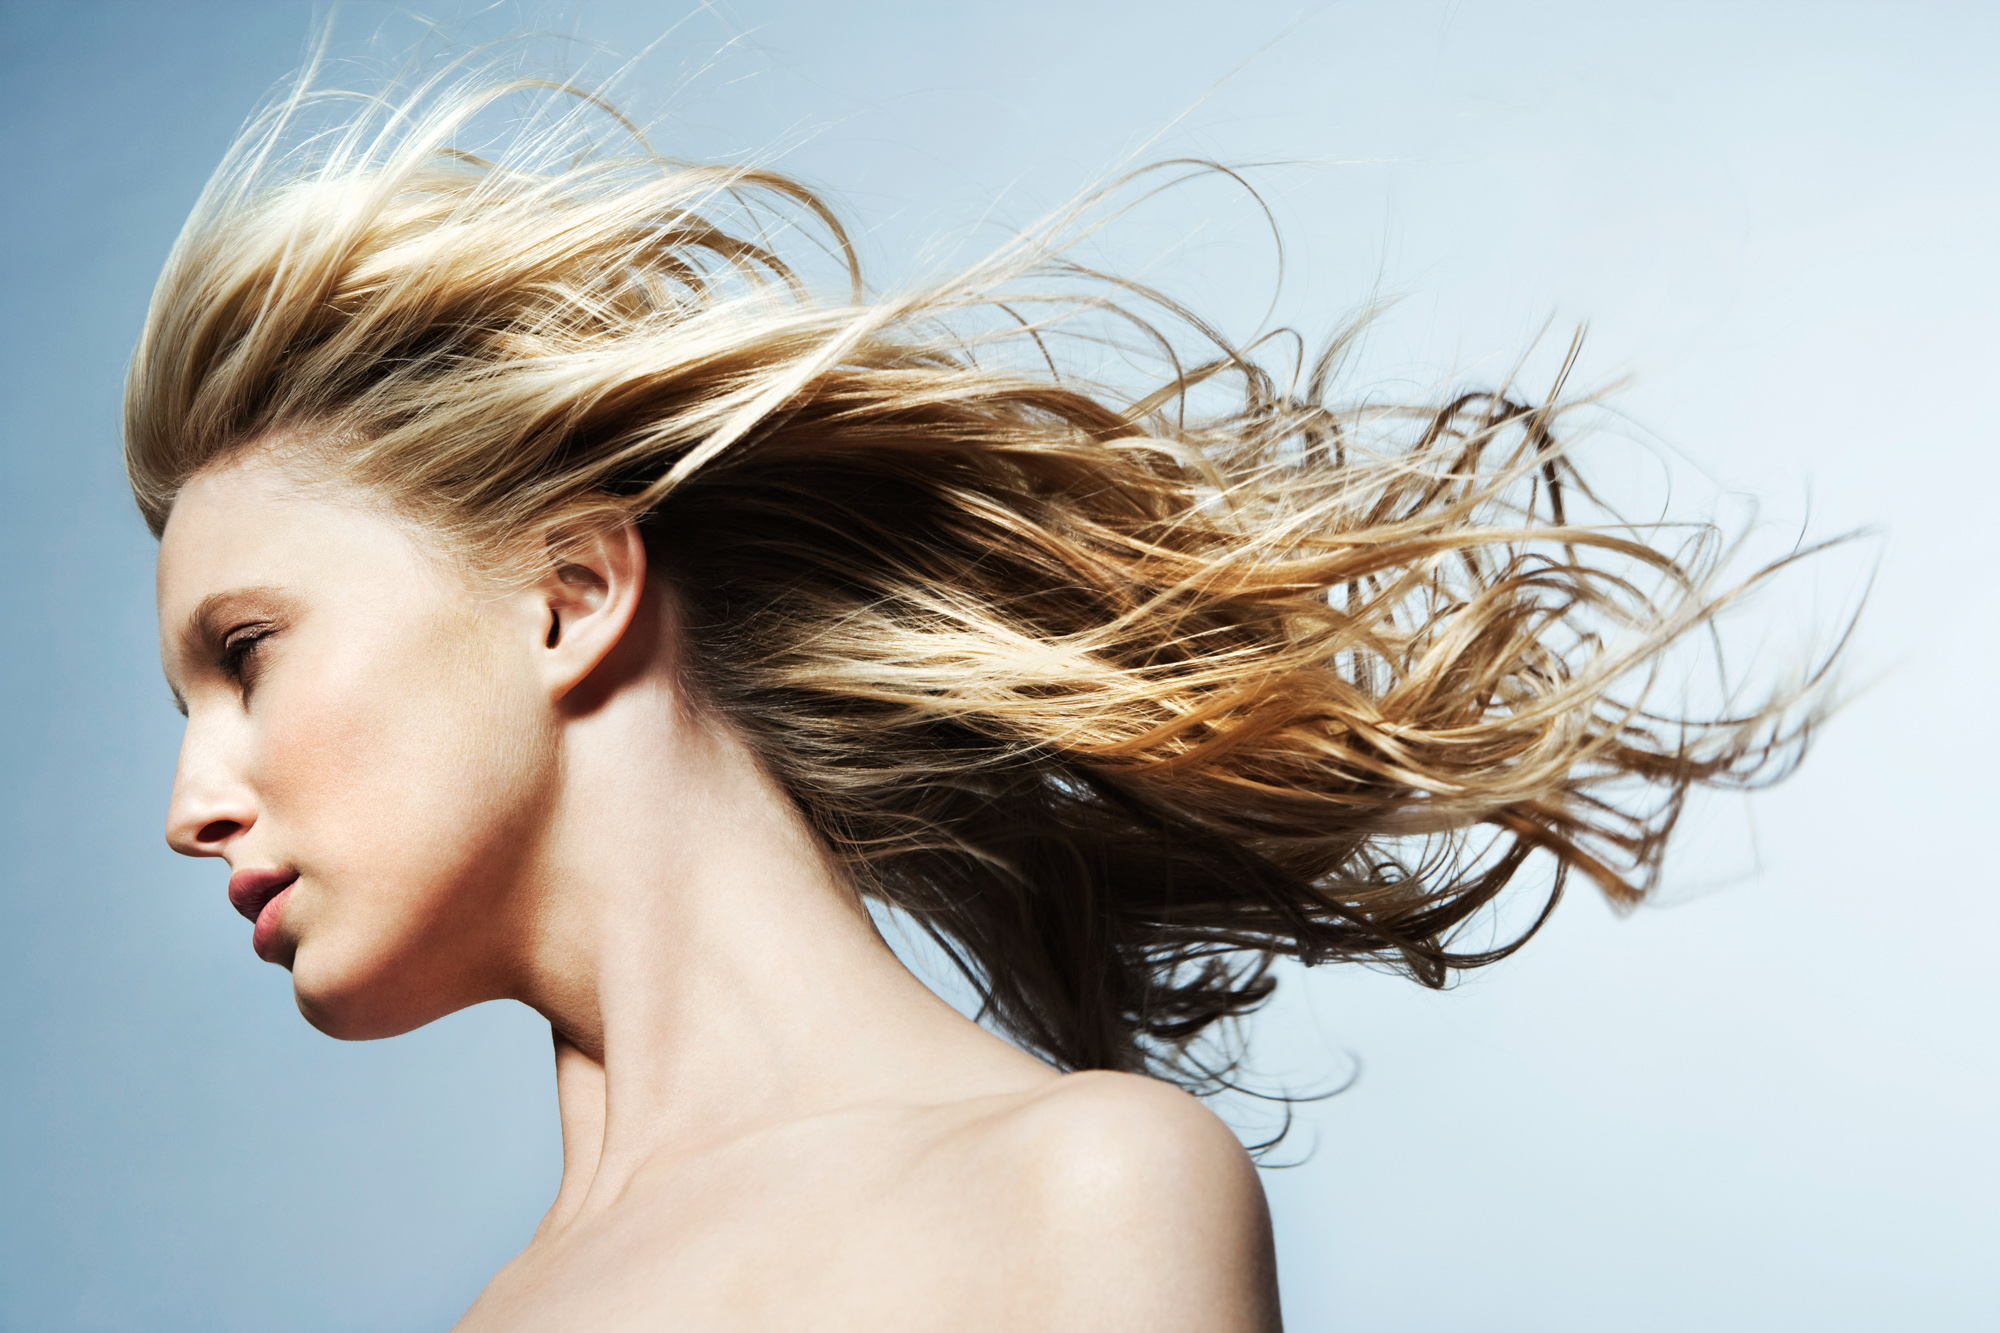 Woman with windblown hair